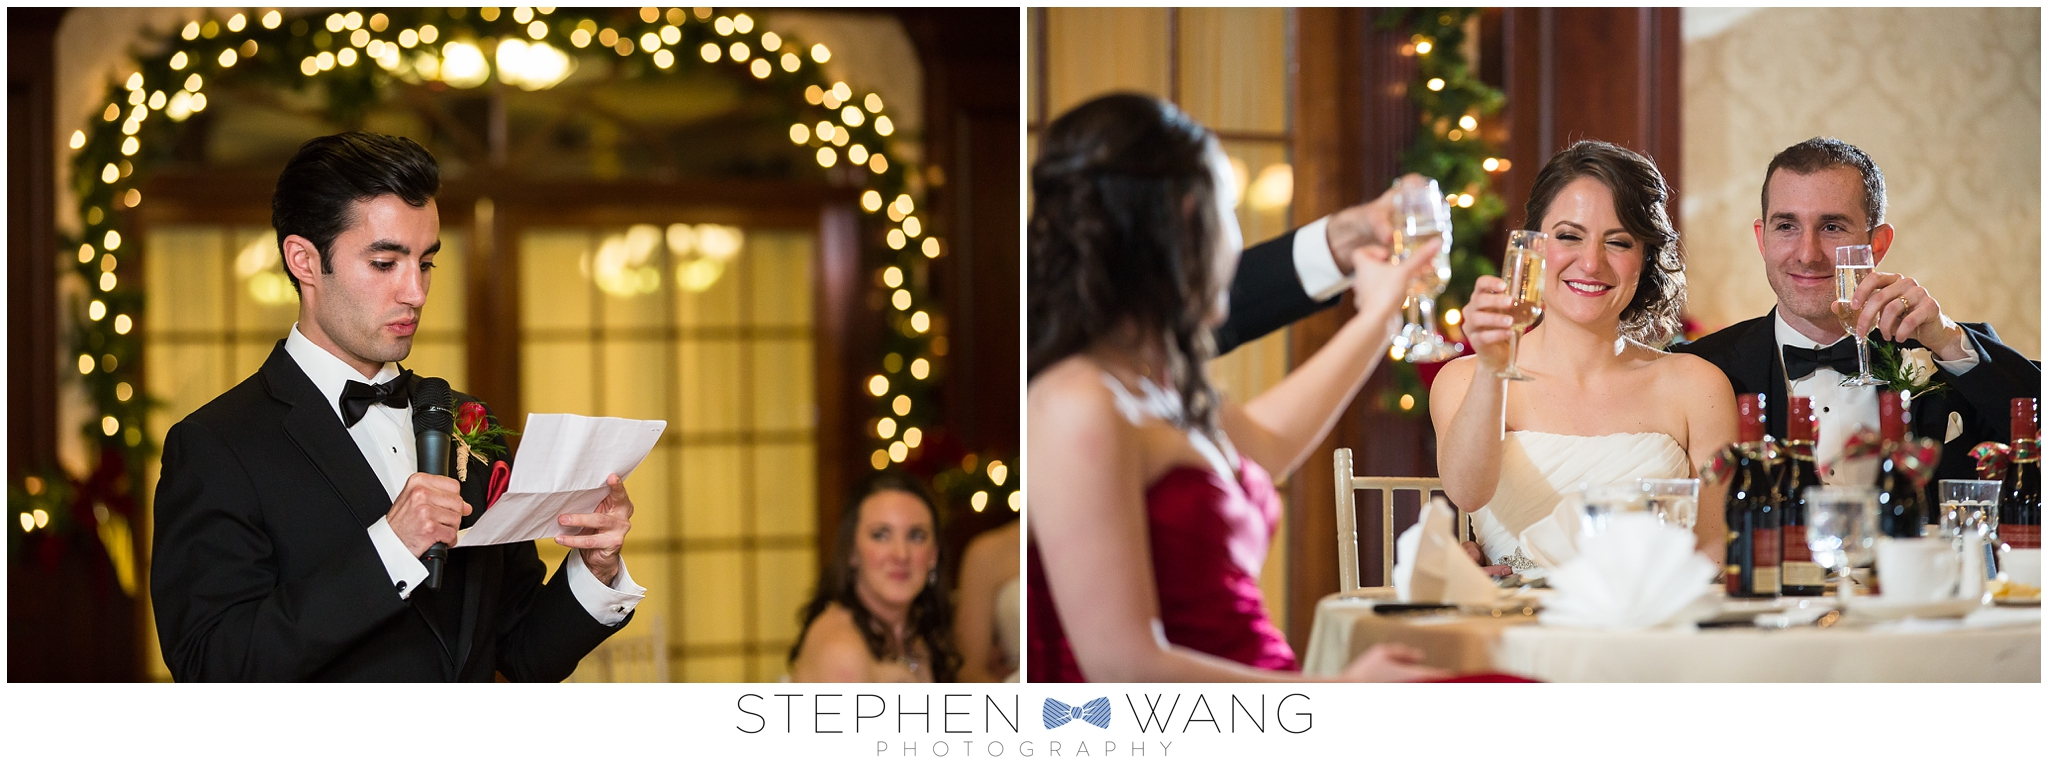 Stephen Wang Photography Wedding Photographer Connecticut CT Aquaturf Southington Winter Wedding Christmas Wedding Holiday Season-12-18_0017.jpg